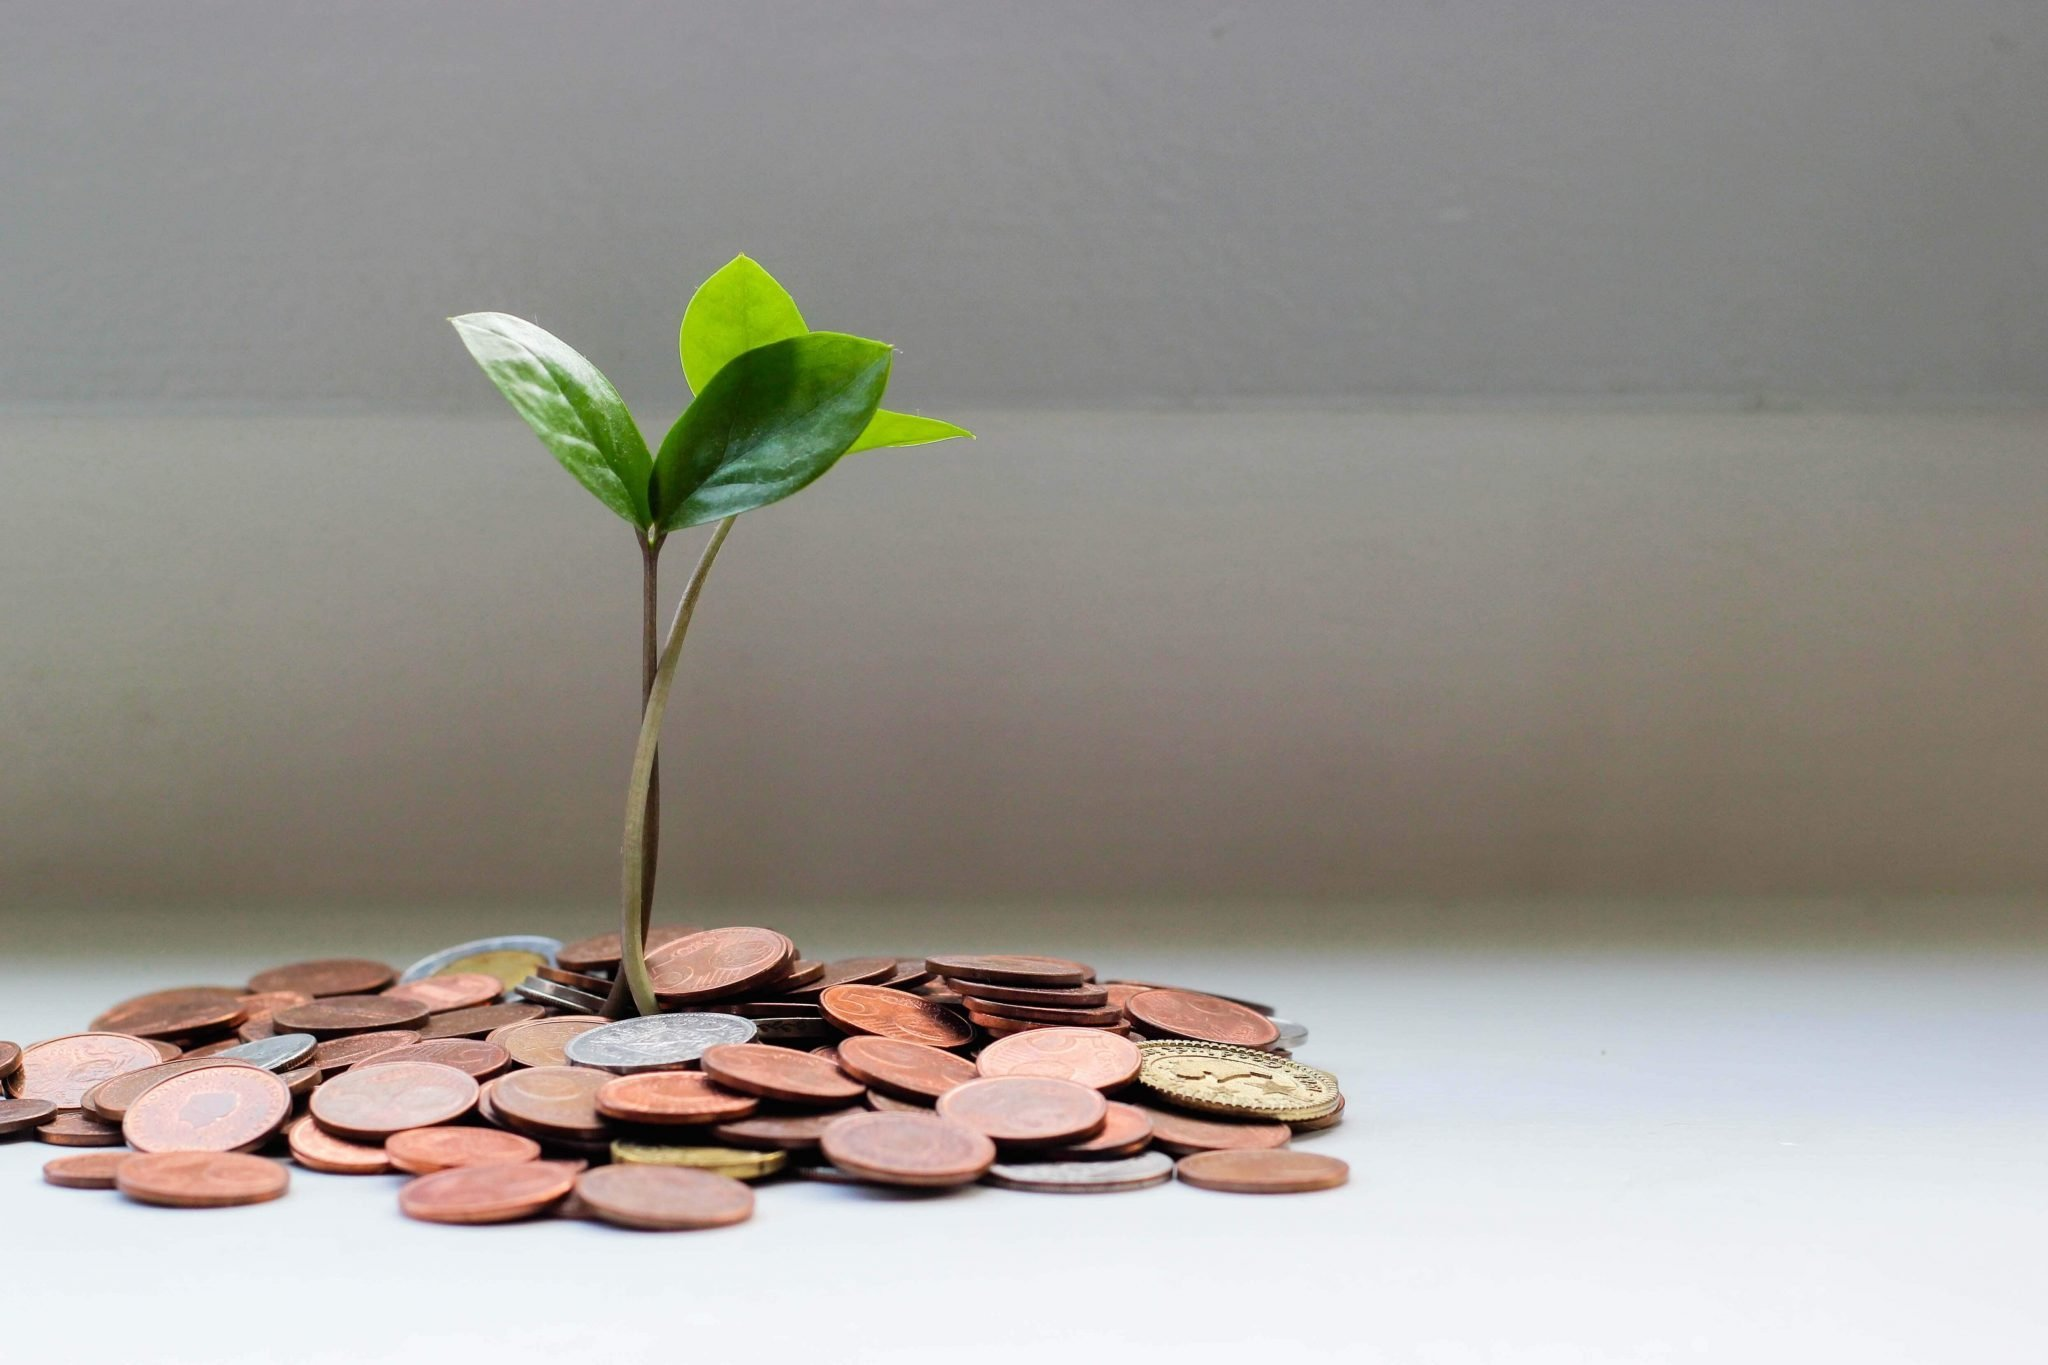 Ultimate Guide to Growing and Caring for Money Tree Plants